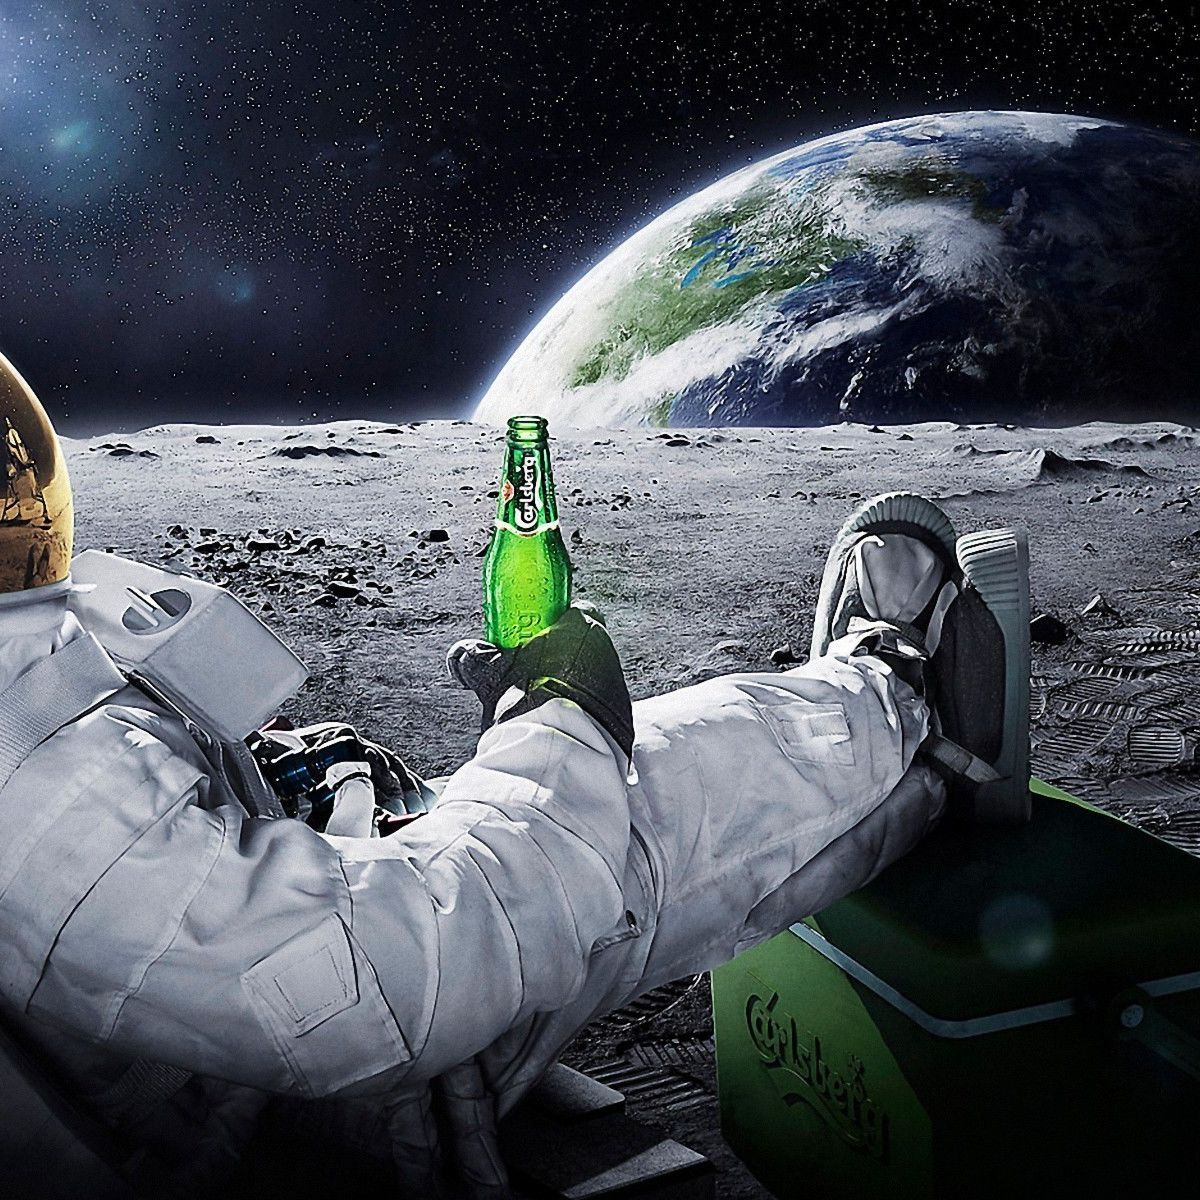 Funny_wallpapers_Astronaut_with_a_beer_on_the_moon_090886_.jpg